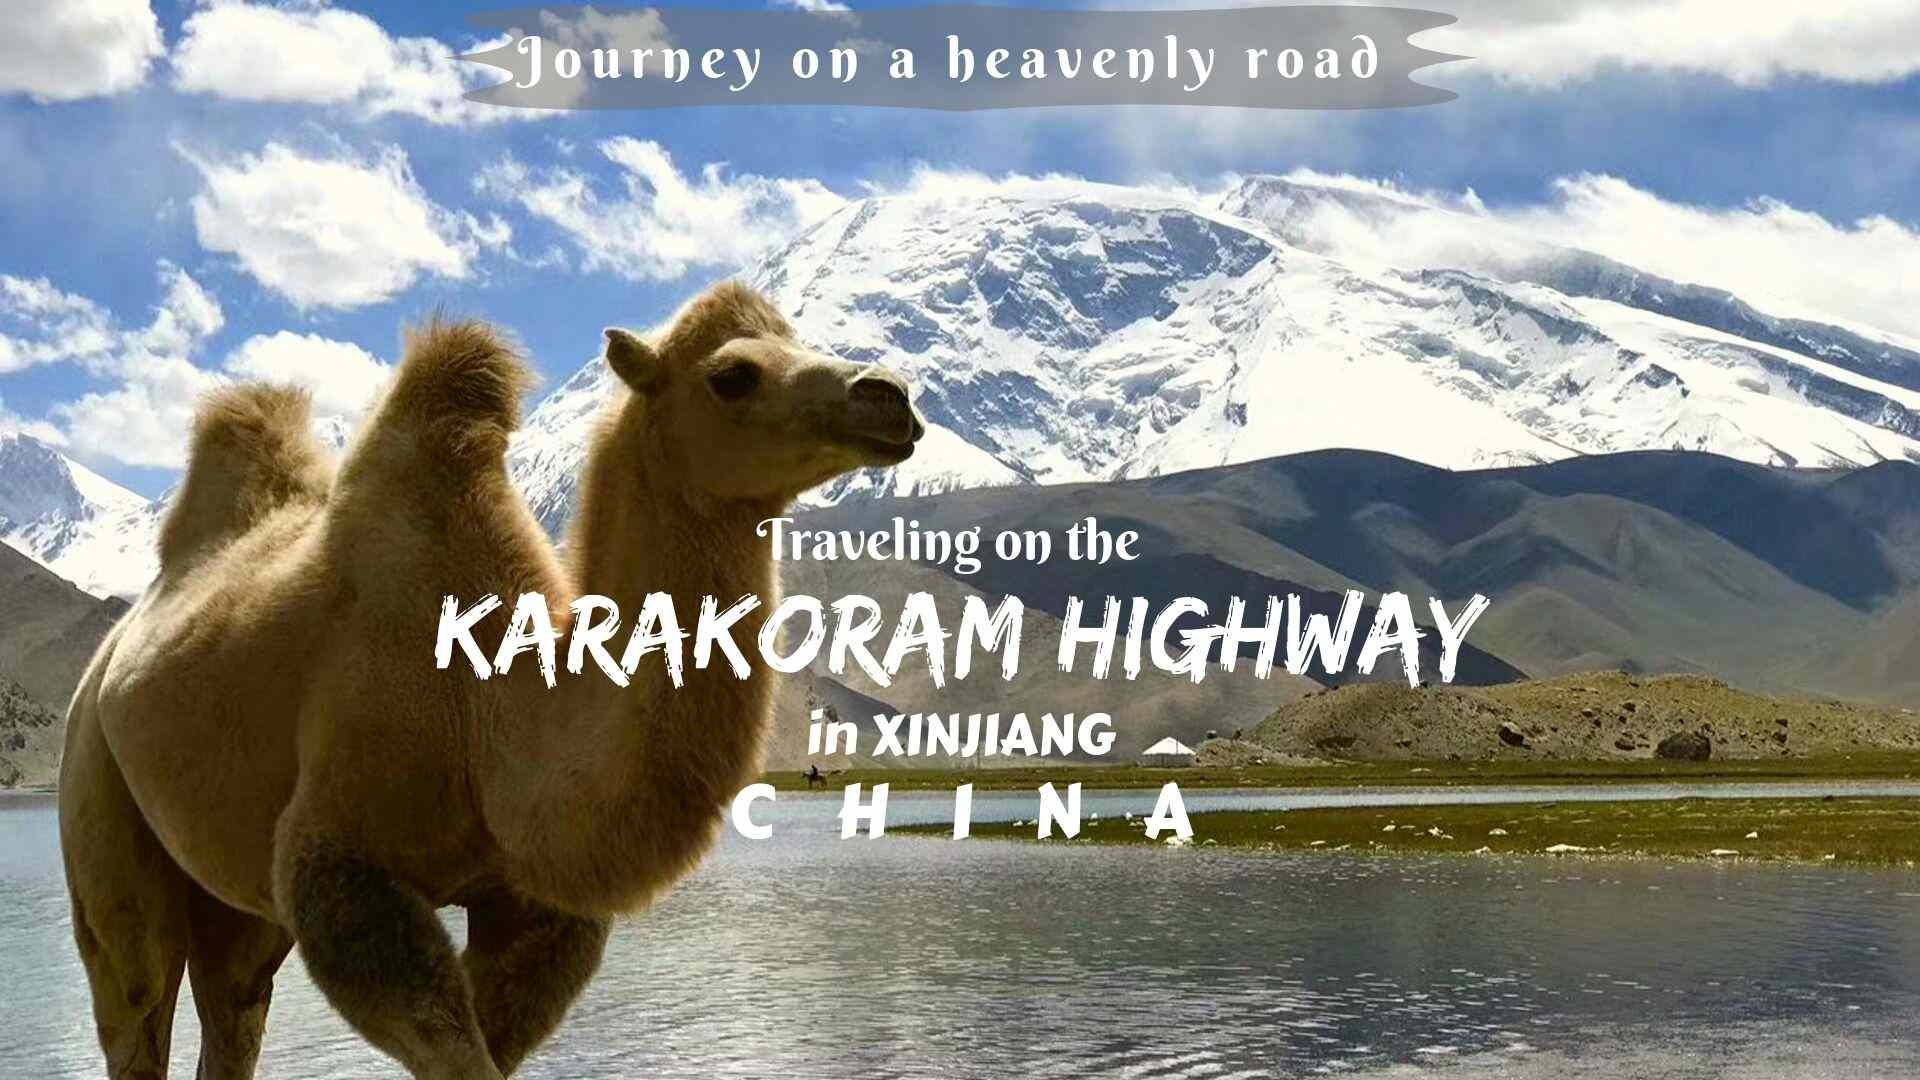 Traveling on the Karakoram Highway in Xinjiang, China- a journey on a heavenly road